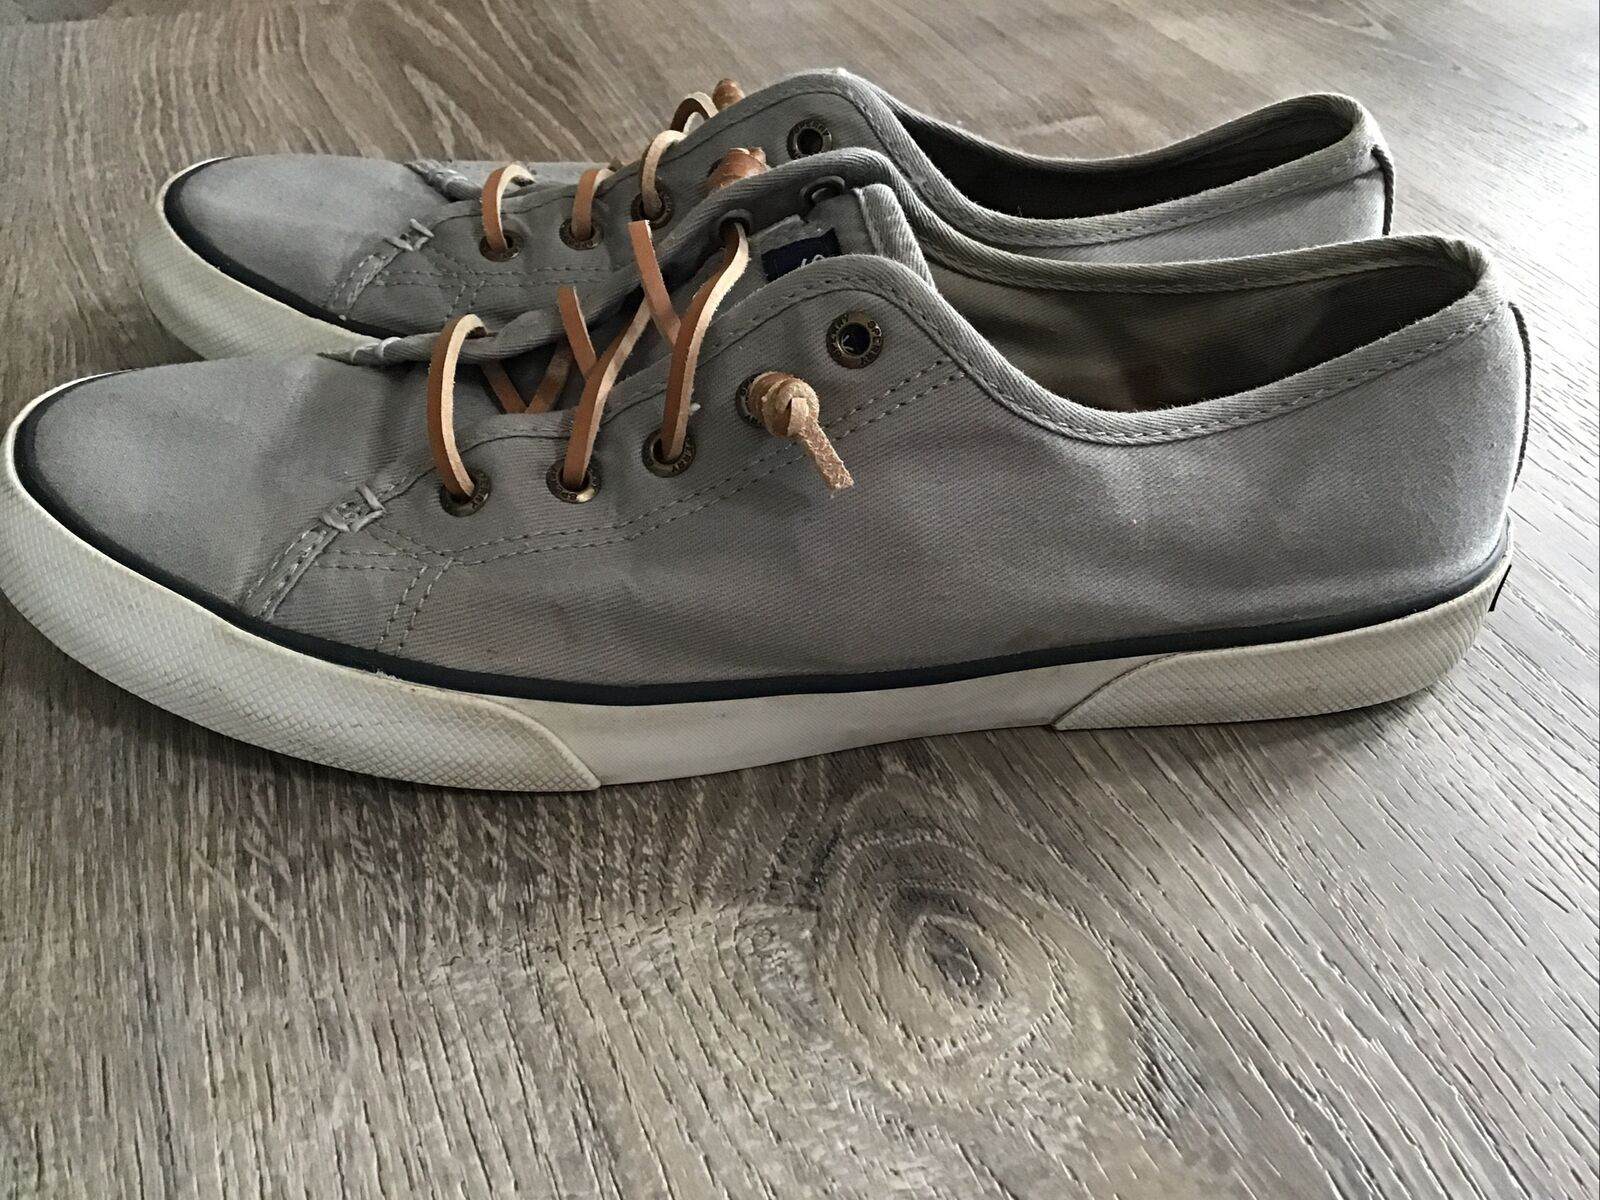 **Sperry Pier View Core STS95729 Shoes, Women's Size 10M, Gray